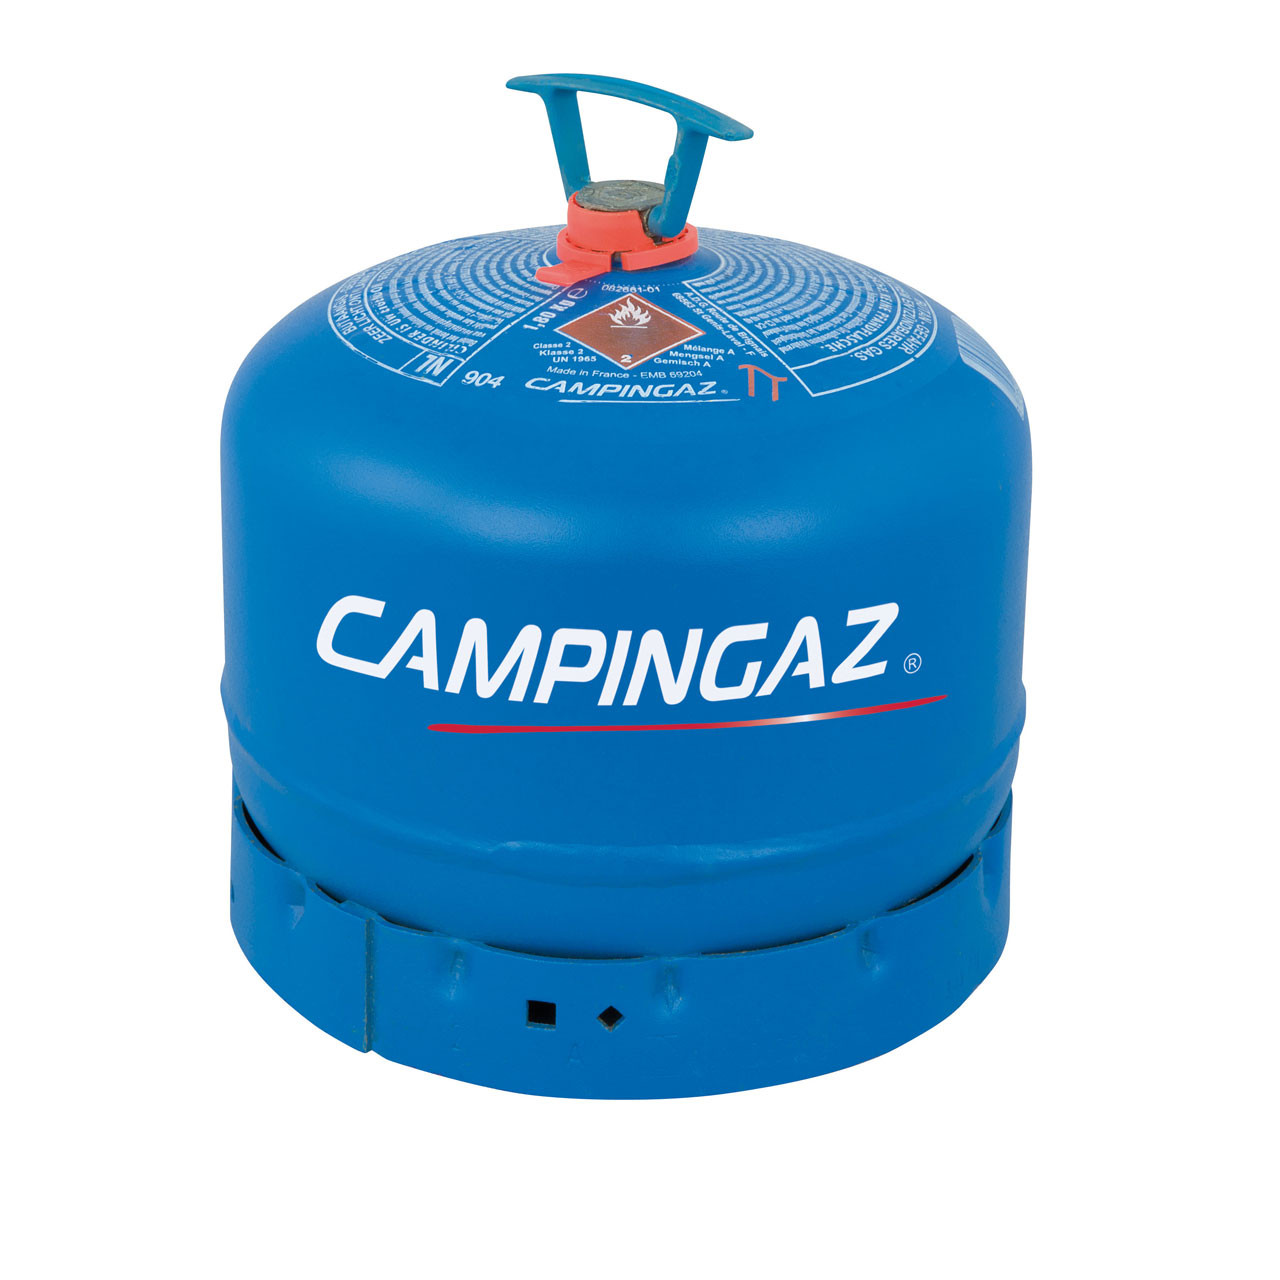 Campingaz 904 Gas Cylinder from Camperite Leisure